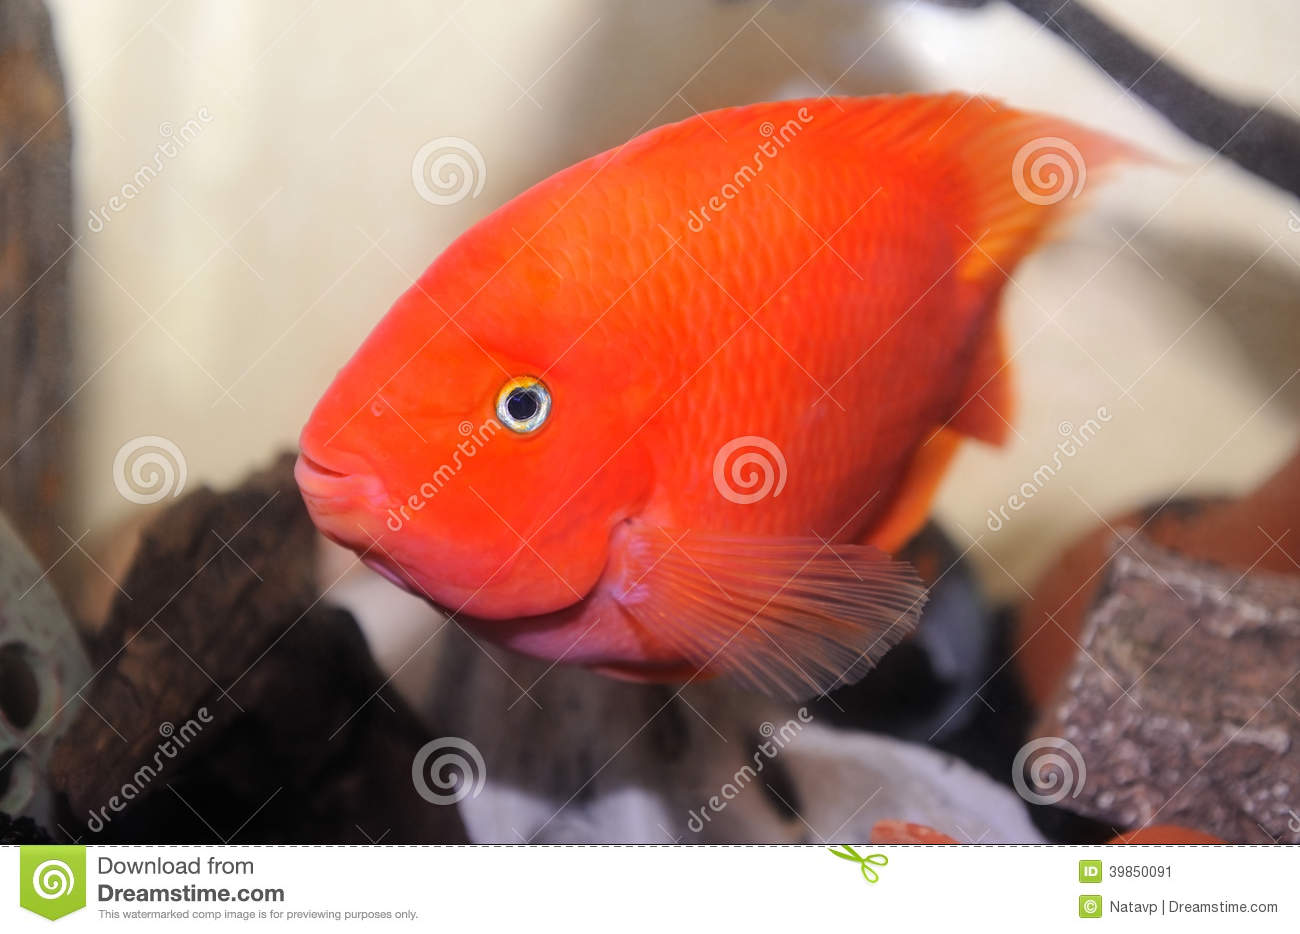 Aquarium Fish Red Parrot Cichlid Stock Image - Image of freshwater ...